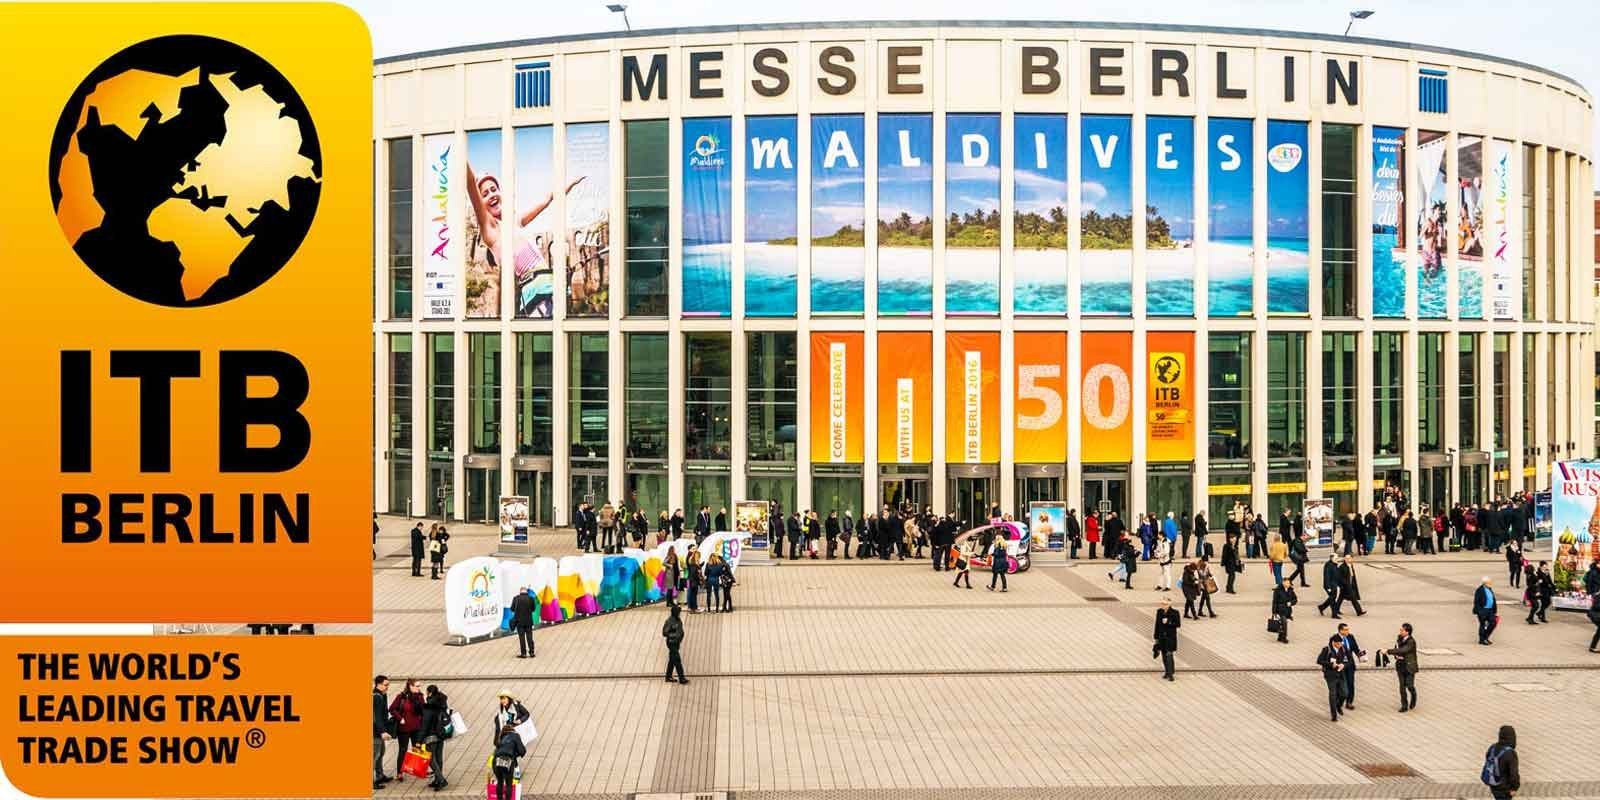 ITB, the world's leading travel trade show